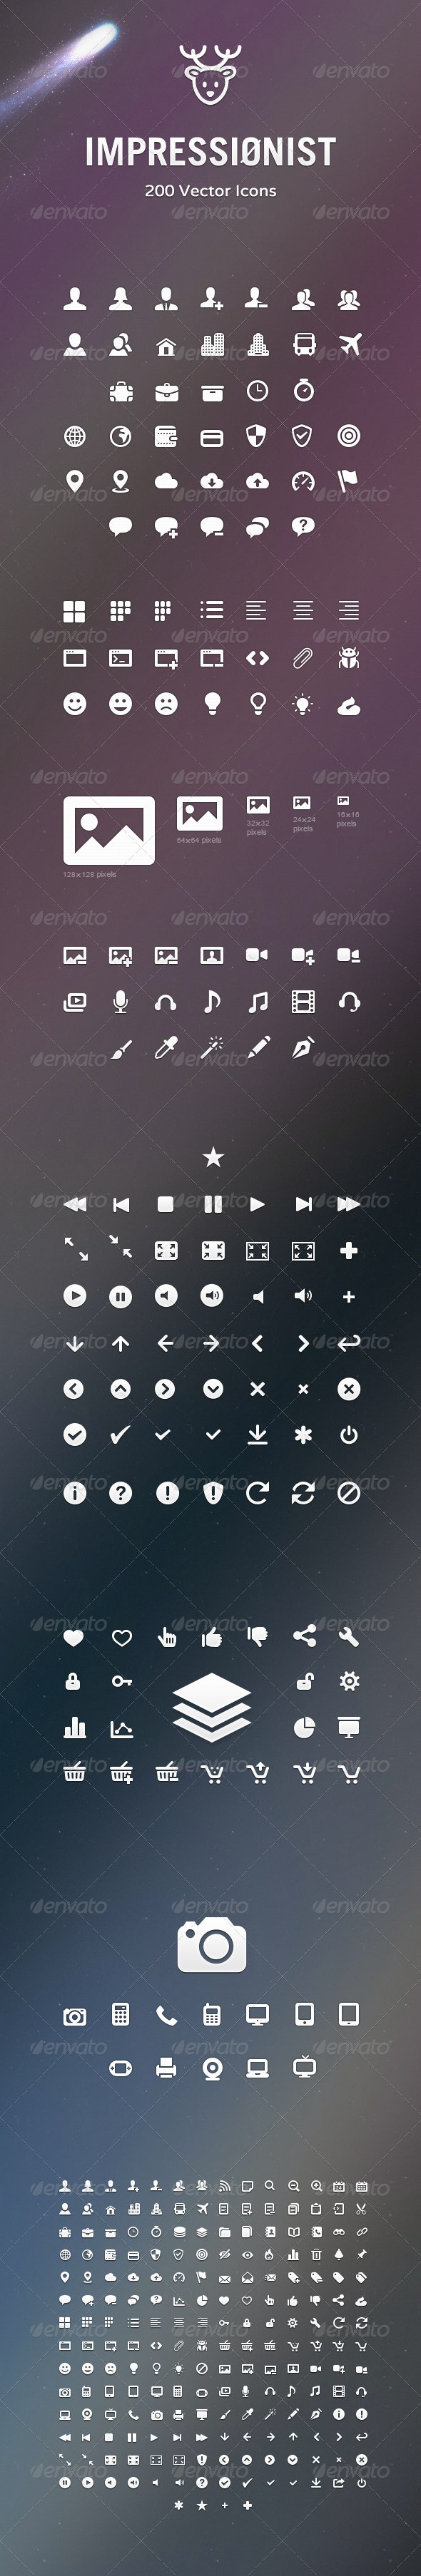 Impressionist Icons – Vector Icons Pack - Web Icons